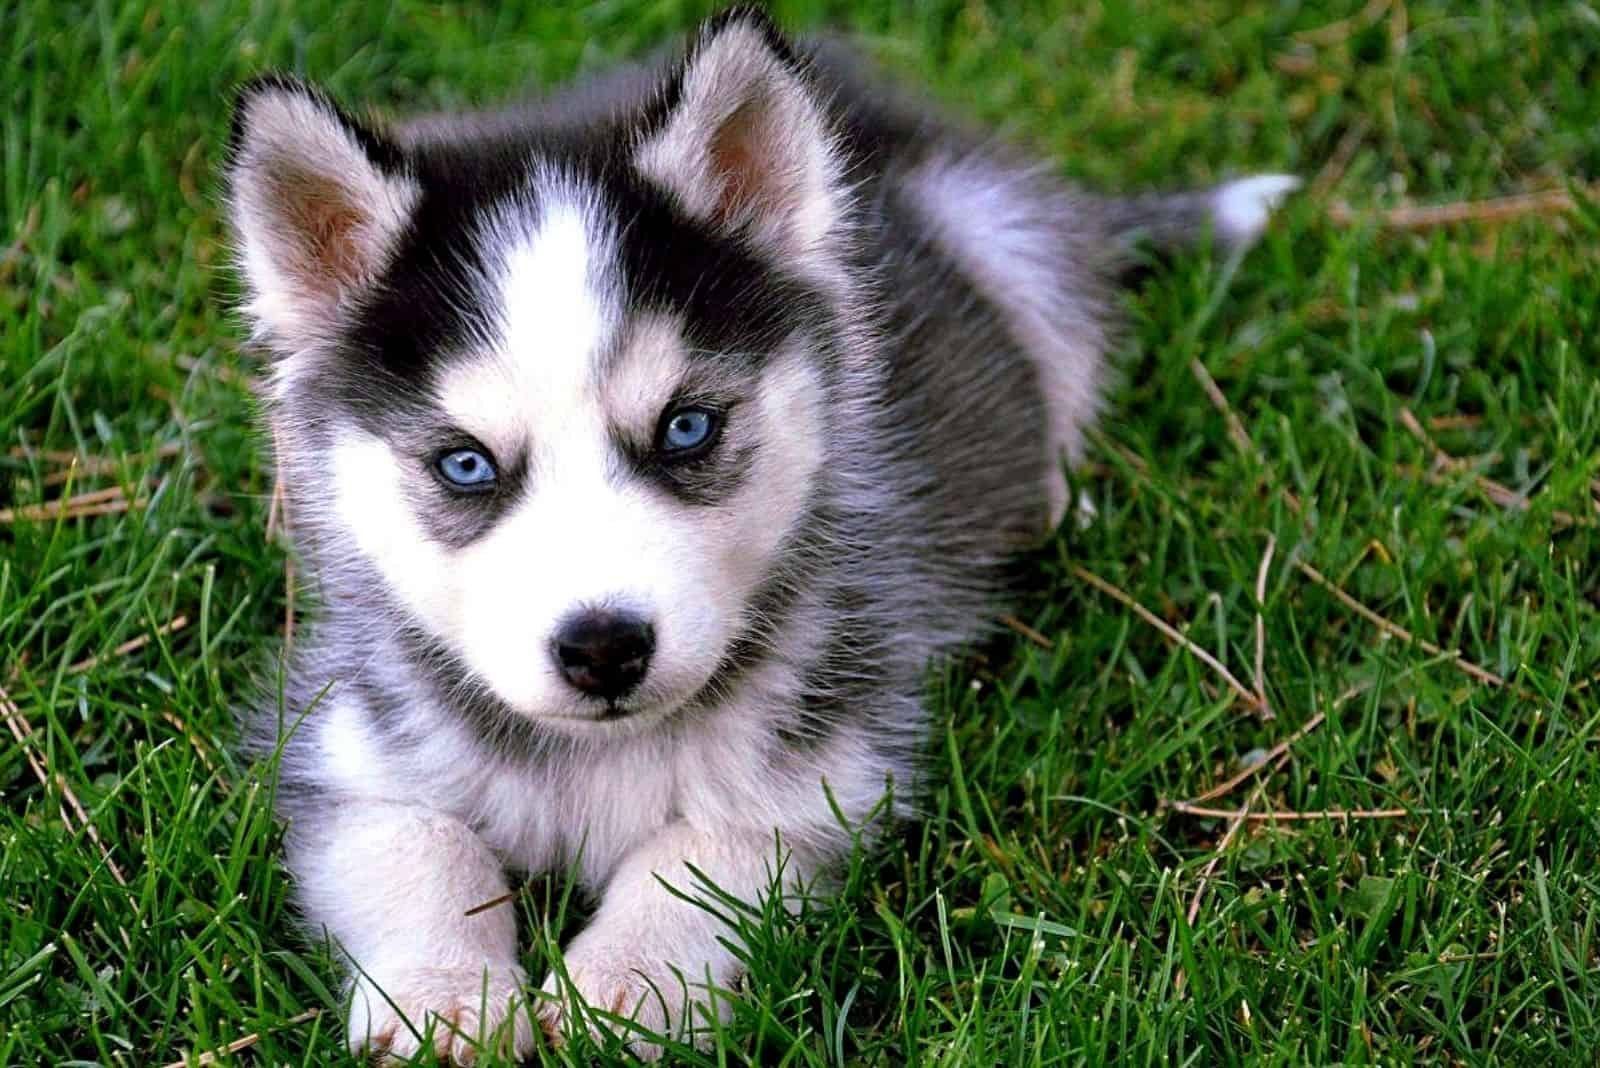 adorable pomsky puppy lying in the grass